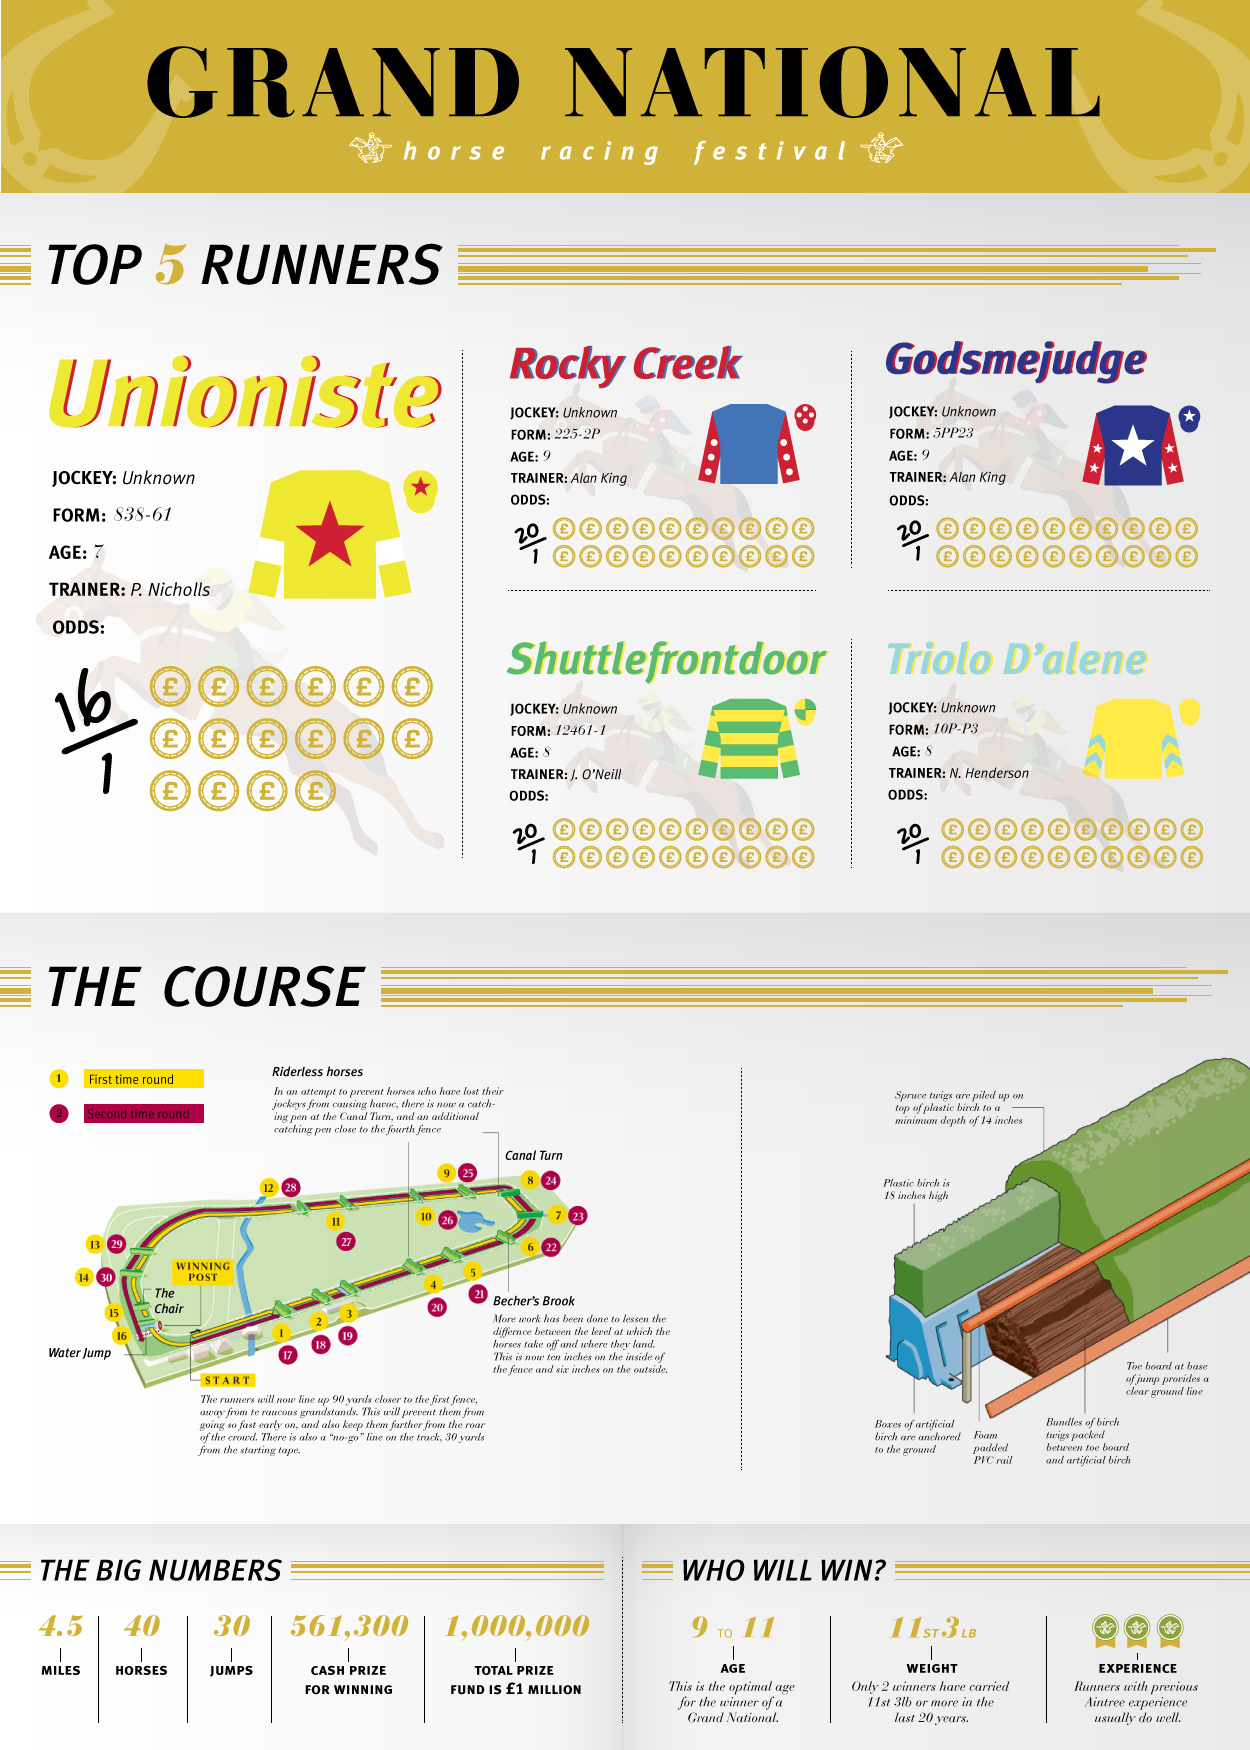 Grand National infographic in full